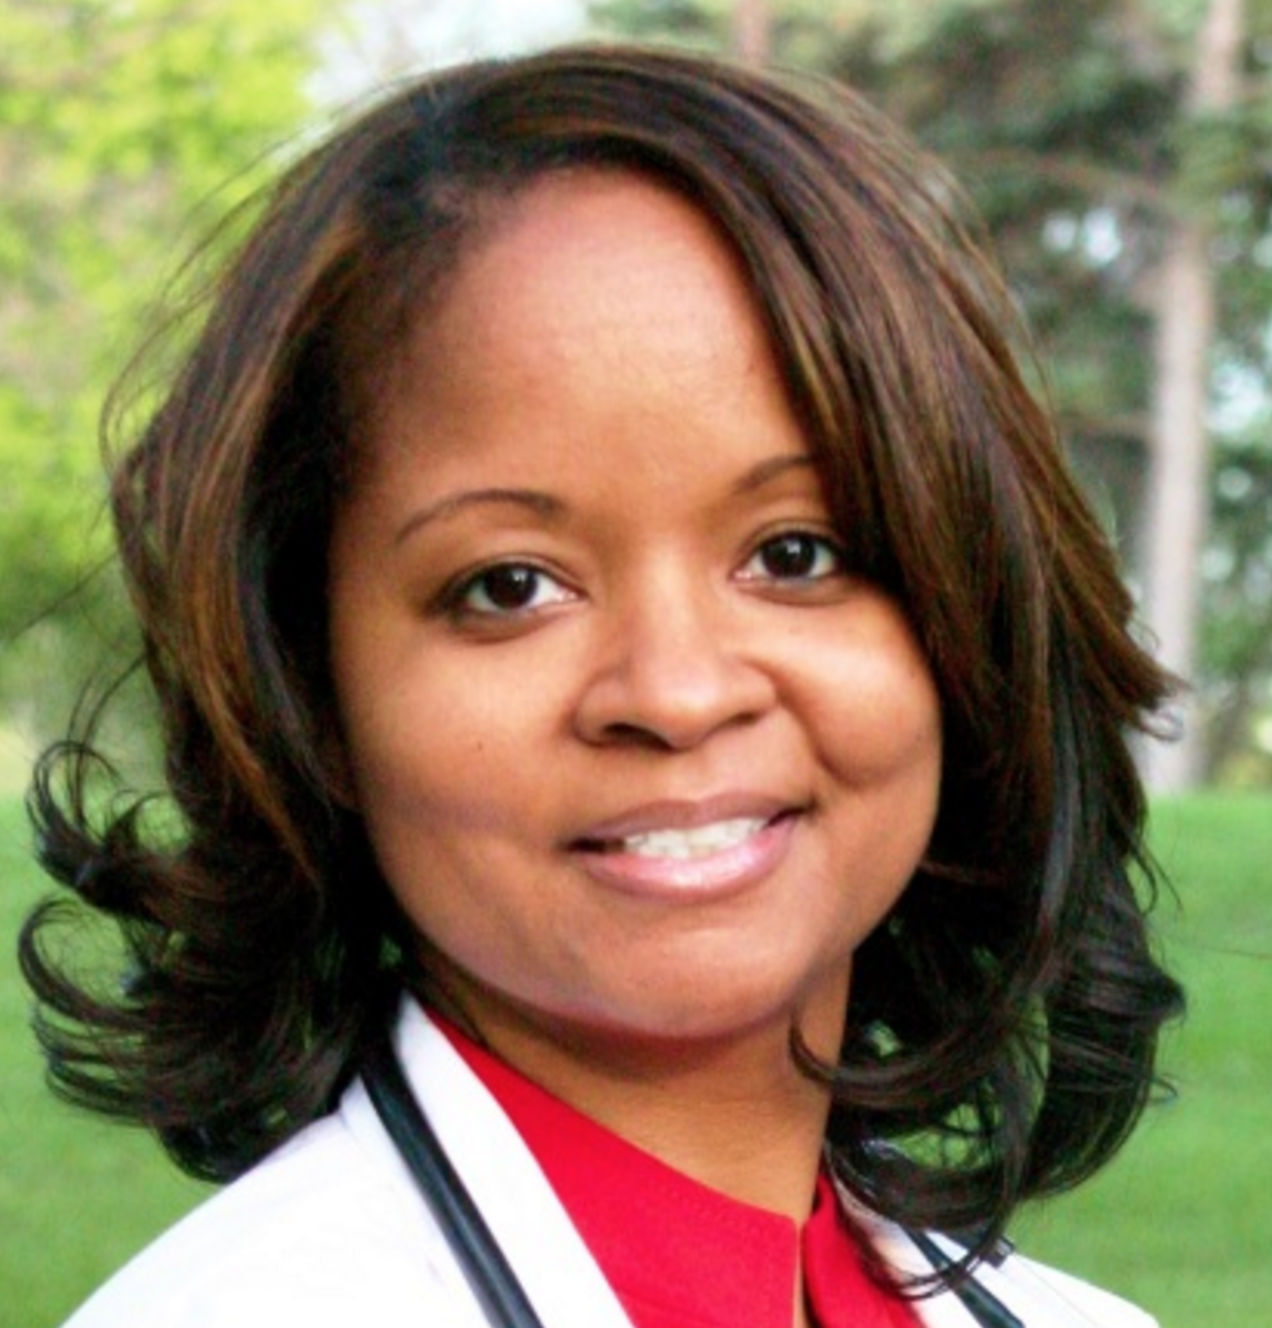 Tamiko Morgan , former medical director of Hennepin Health